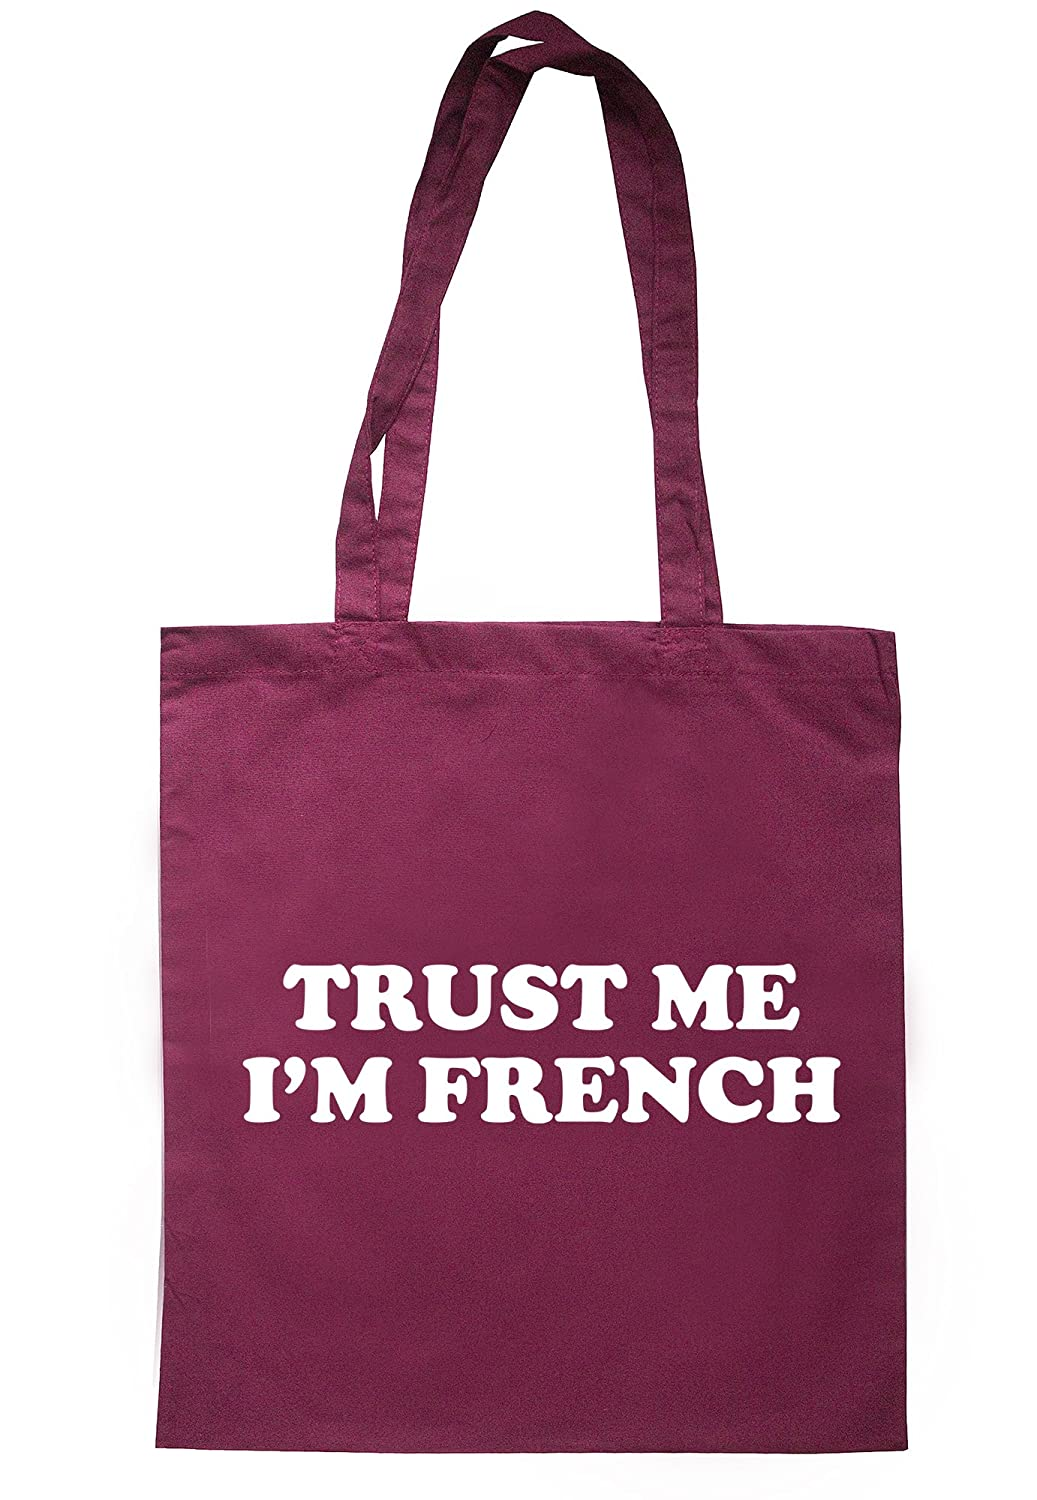 illustratedidentity Trust Me I'm French Tote Bag 37.5cm x 42cm with long handles TB1799-TB-NV